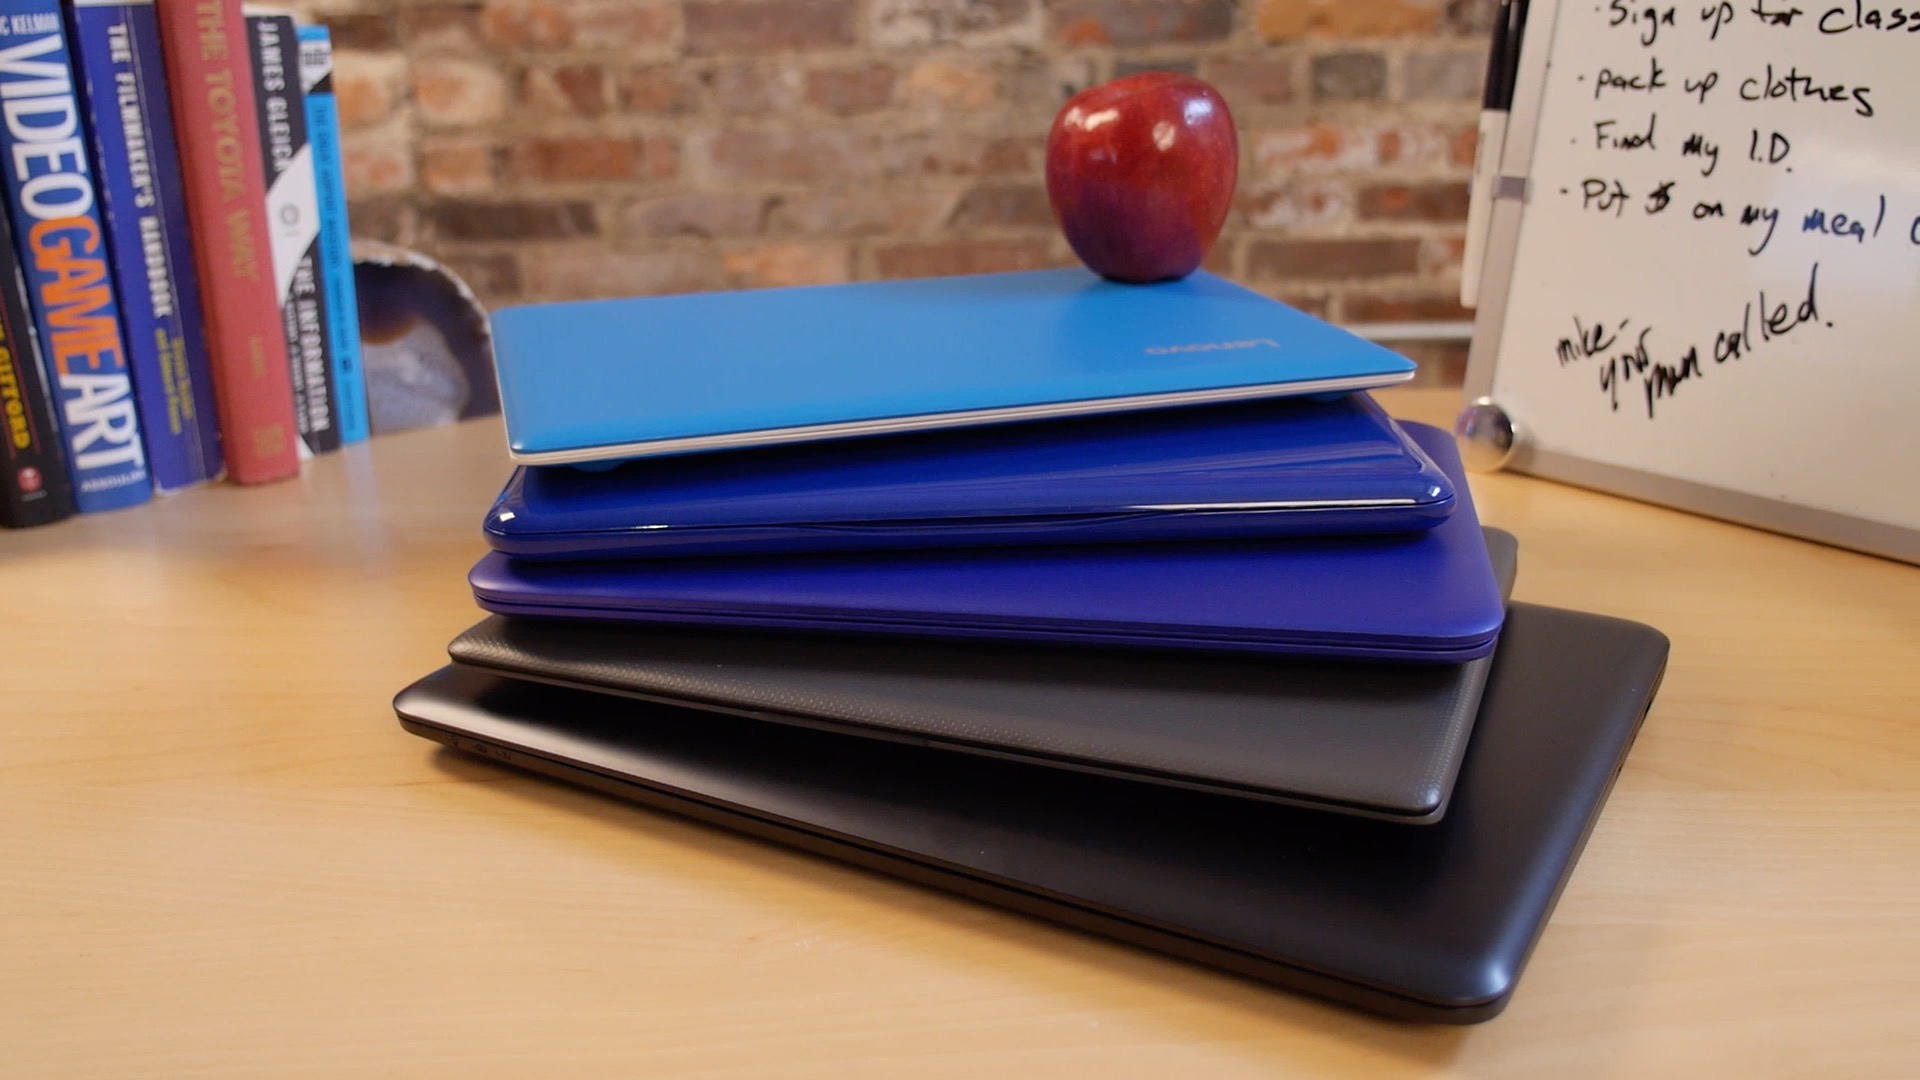 These are the best 5 laptops under $200